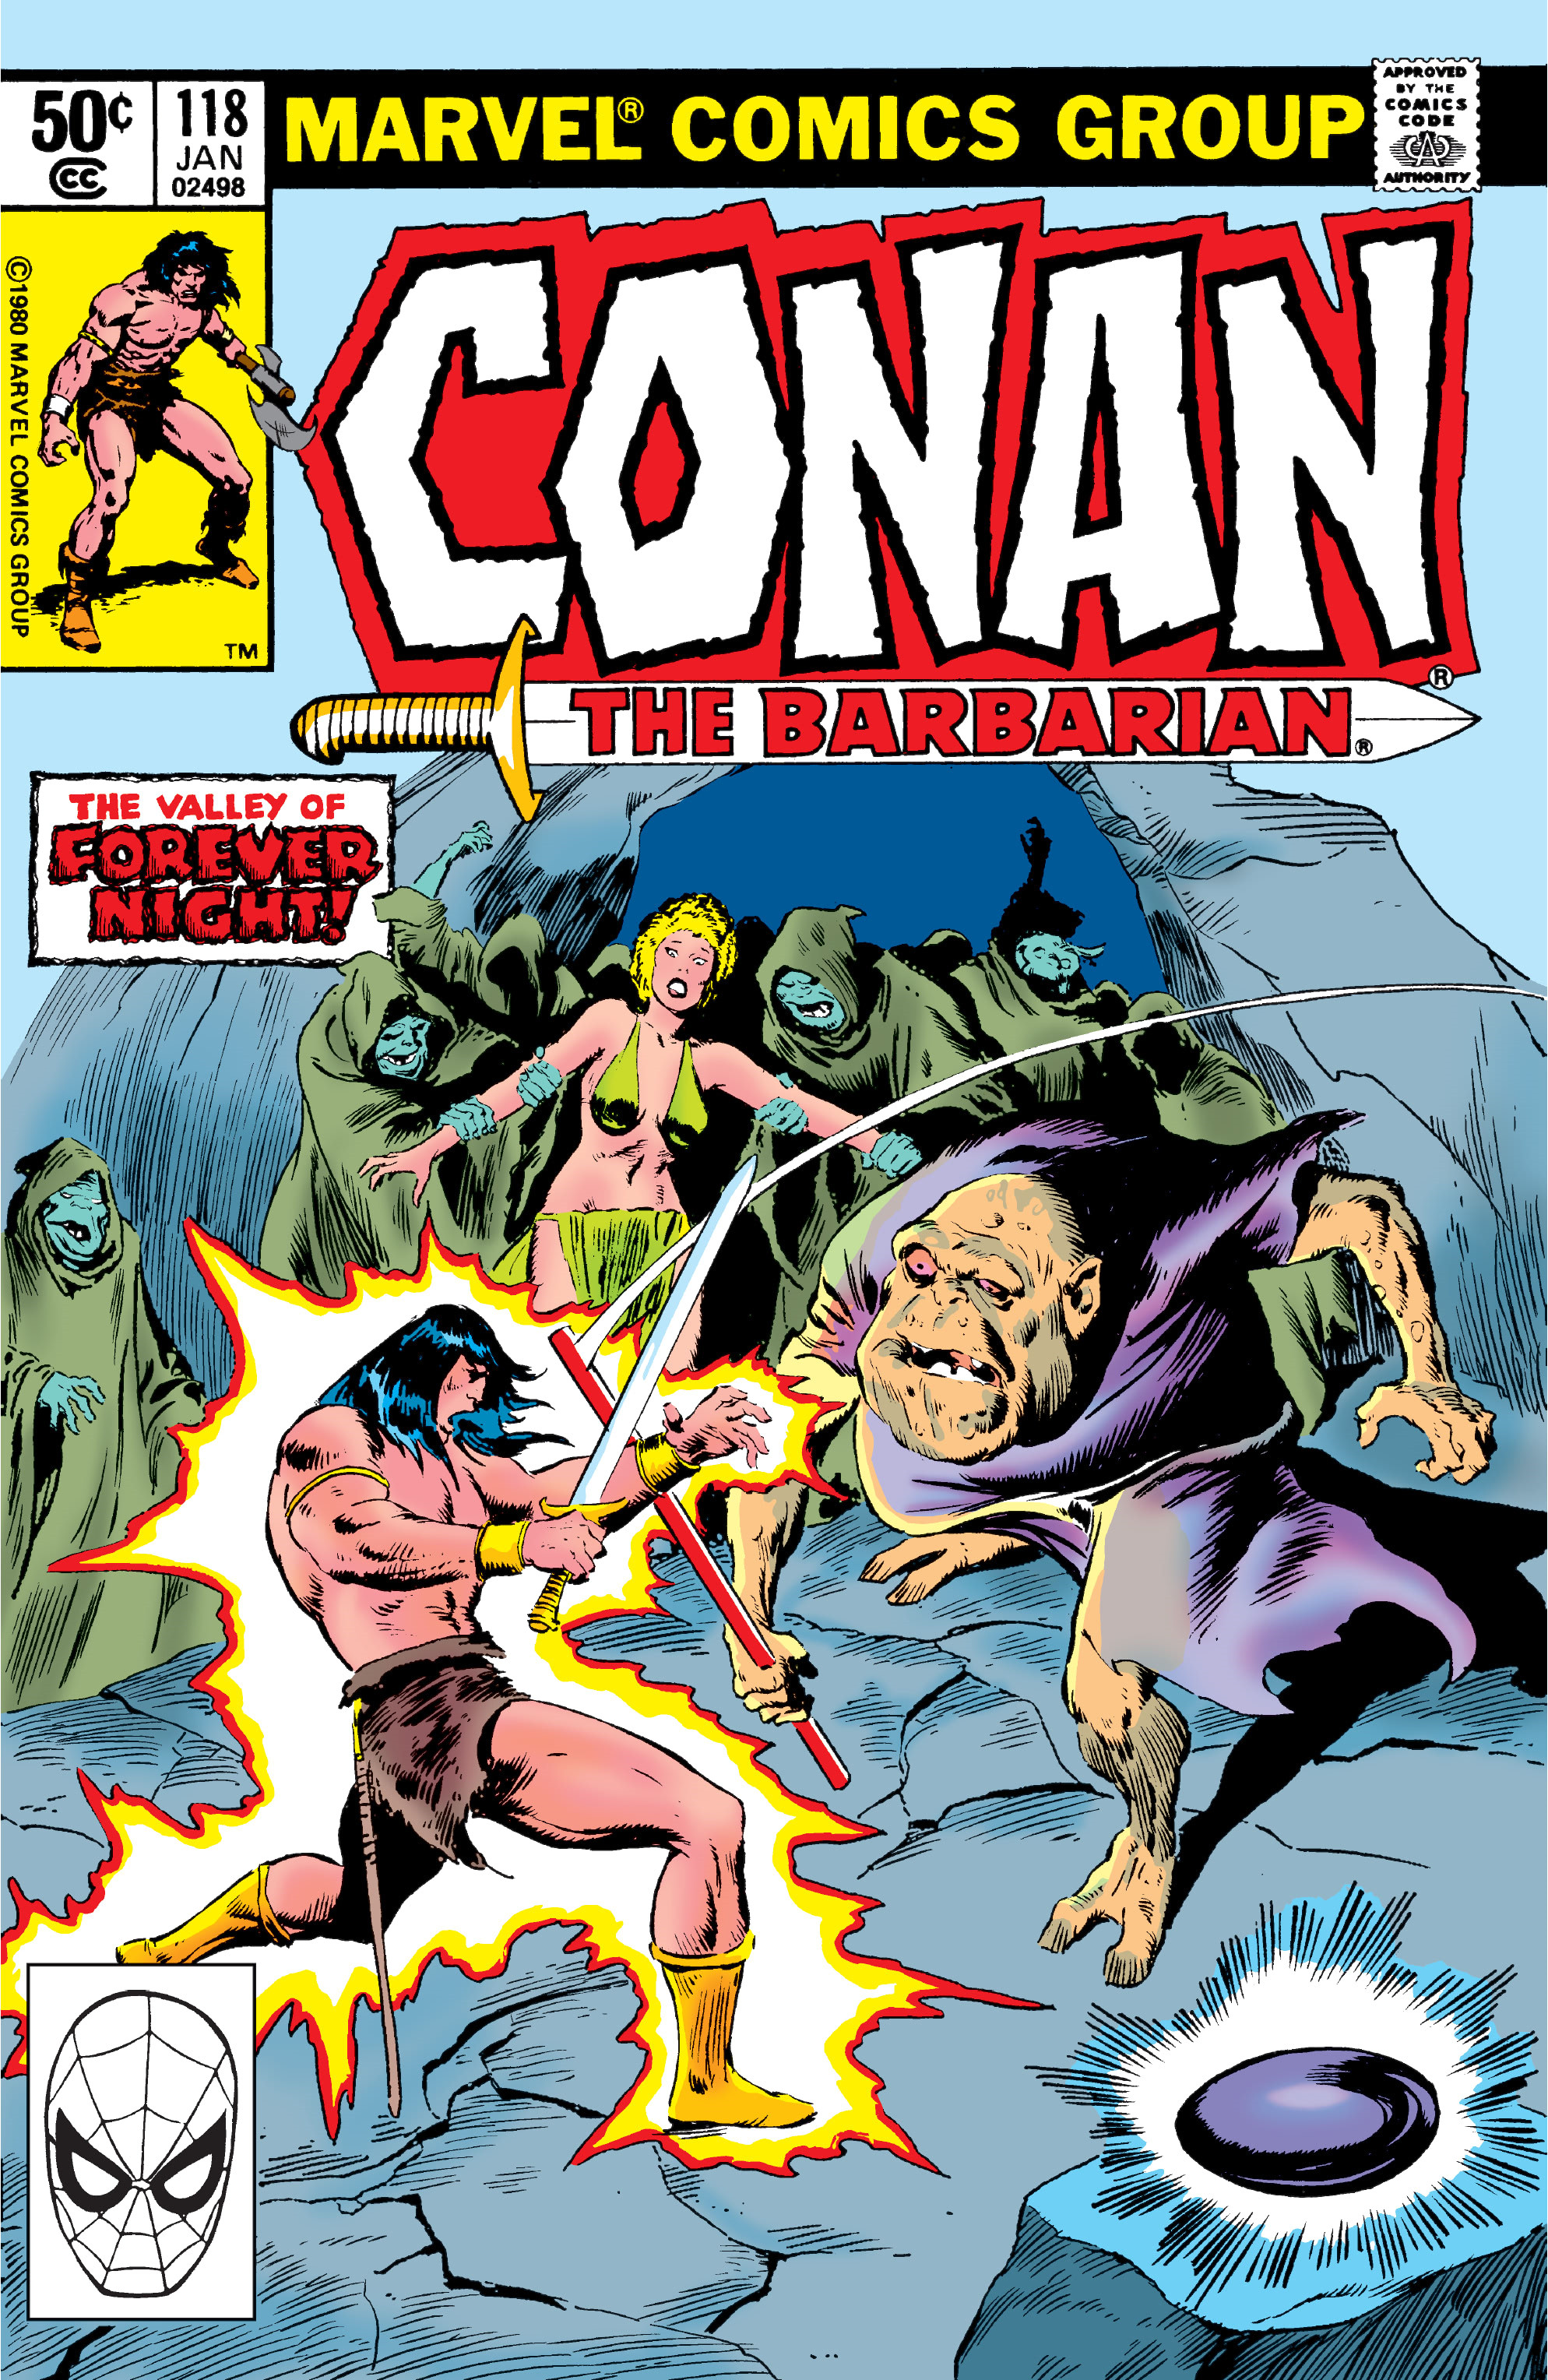 Conan the Barbarian Vol 1 118